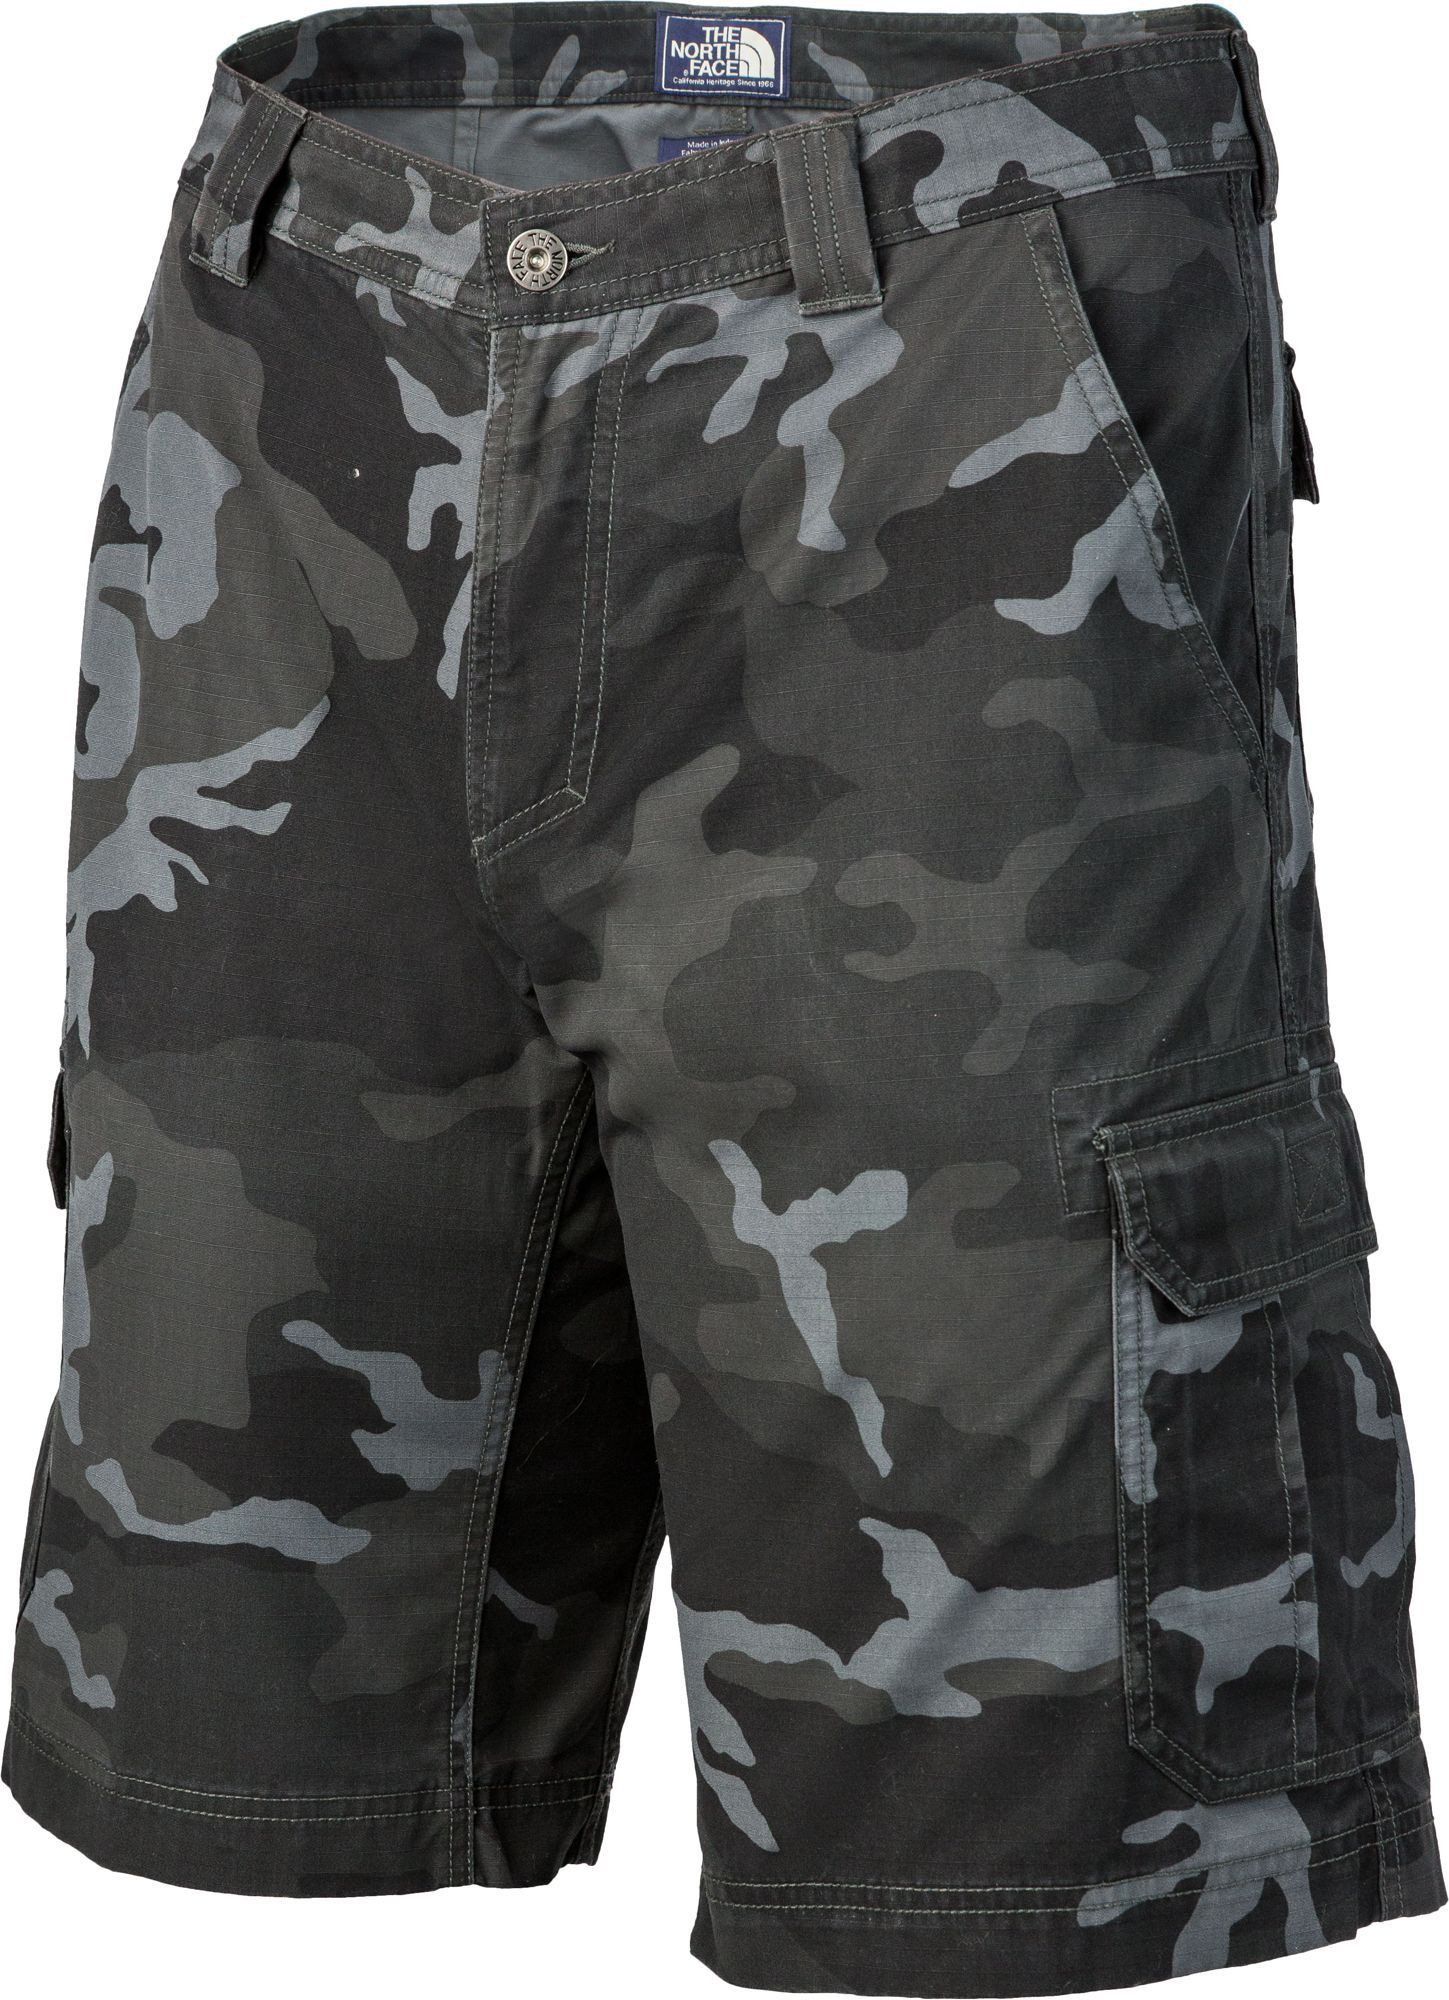 cbbc329436 The North Face Men's Tribe Cargo Shorts in 2019 | Products | The ...